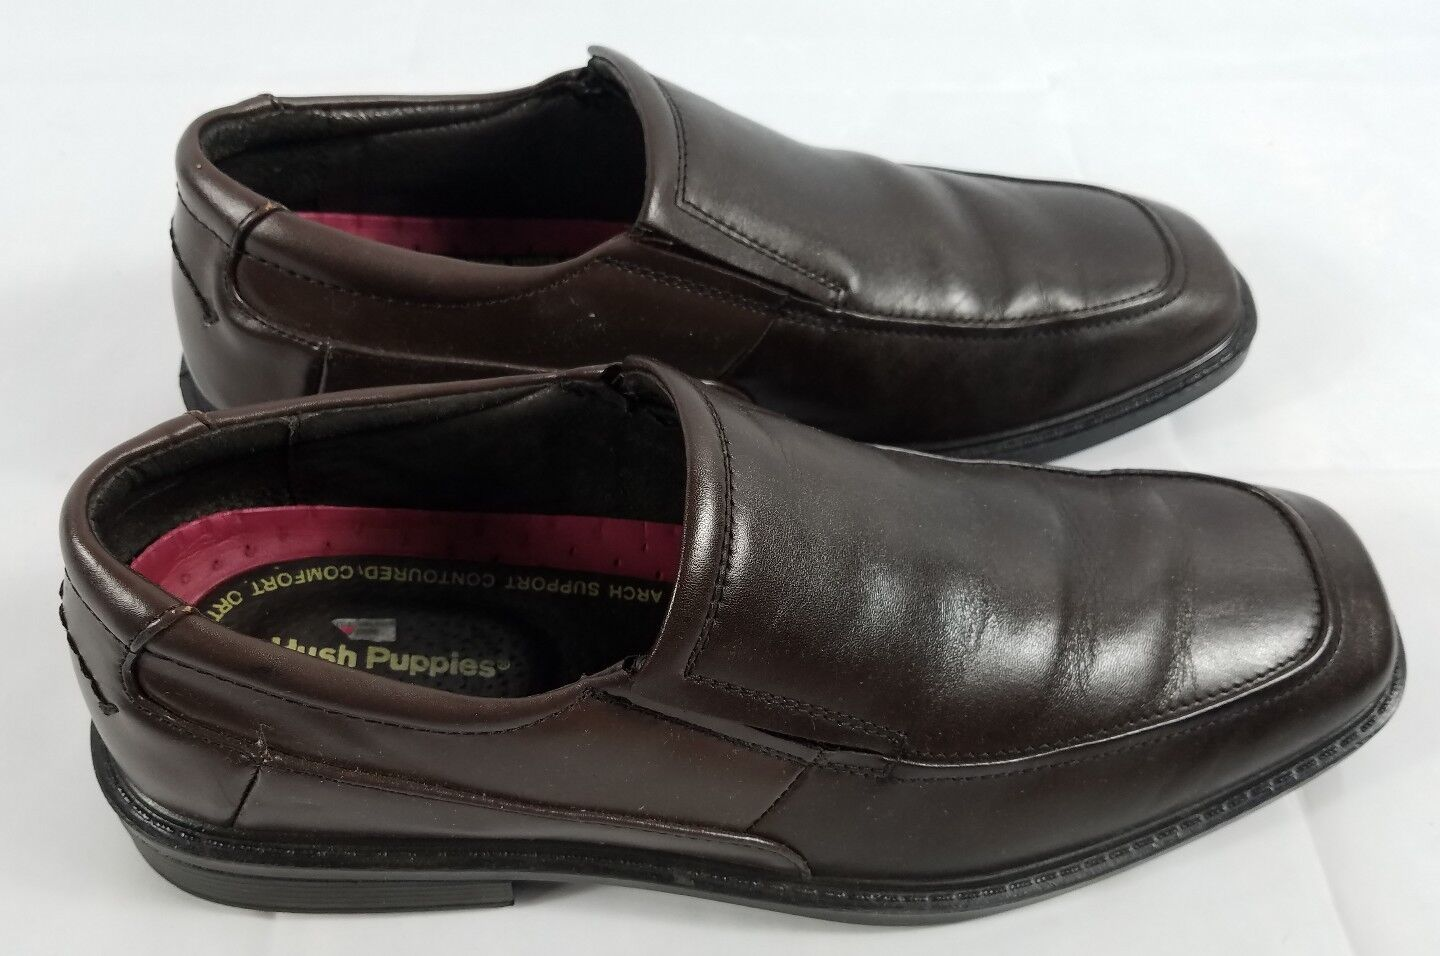 Hush Puppies Shelton Brown Leather Slip On shoes Size 11.5M Office Comfort Relax